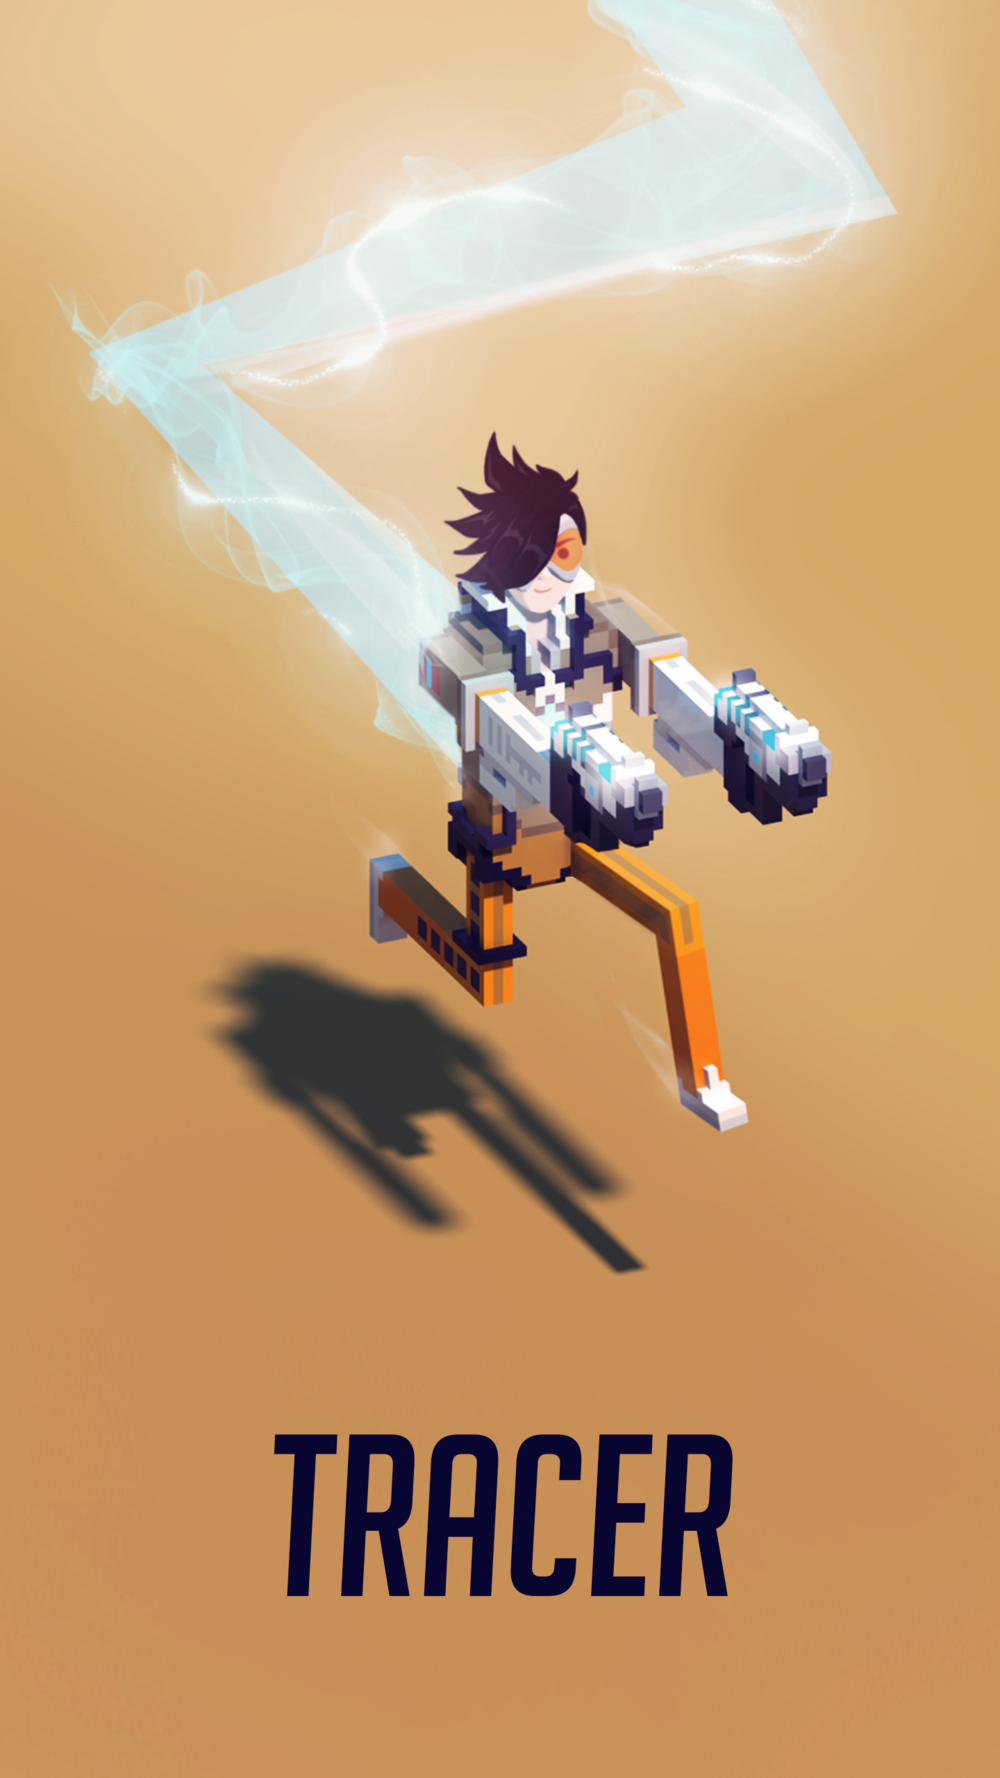 TracerOverwatch_voxel.png